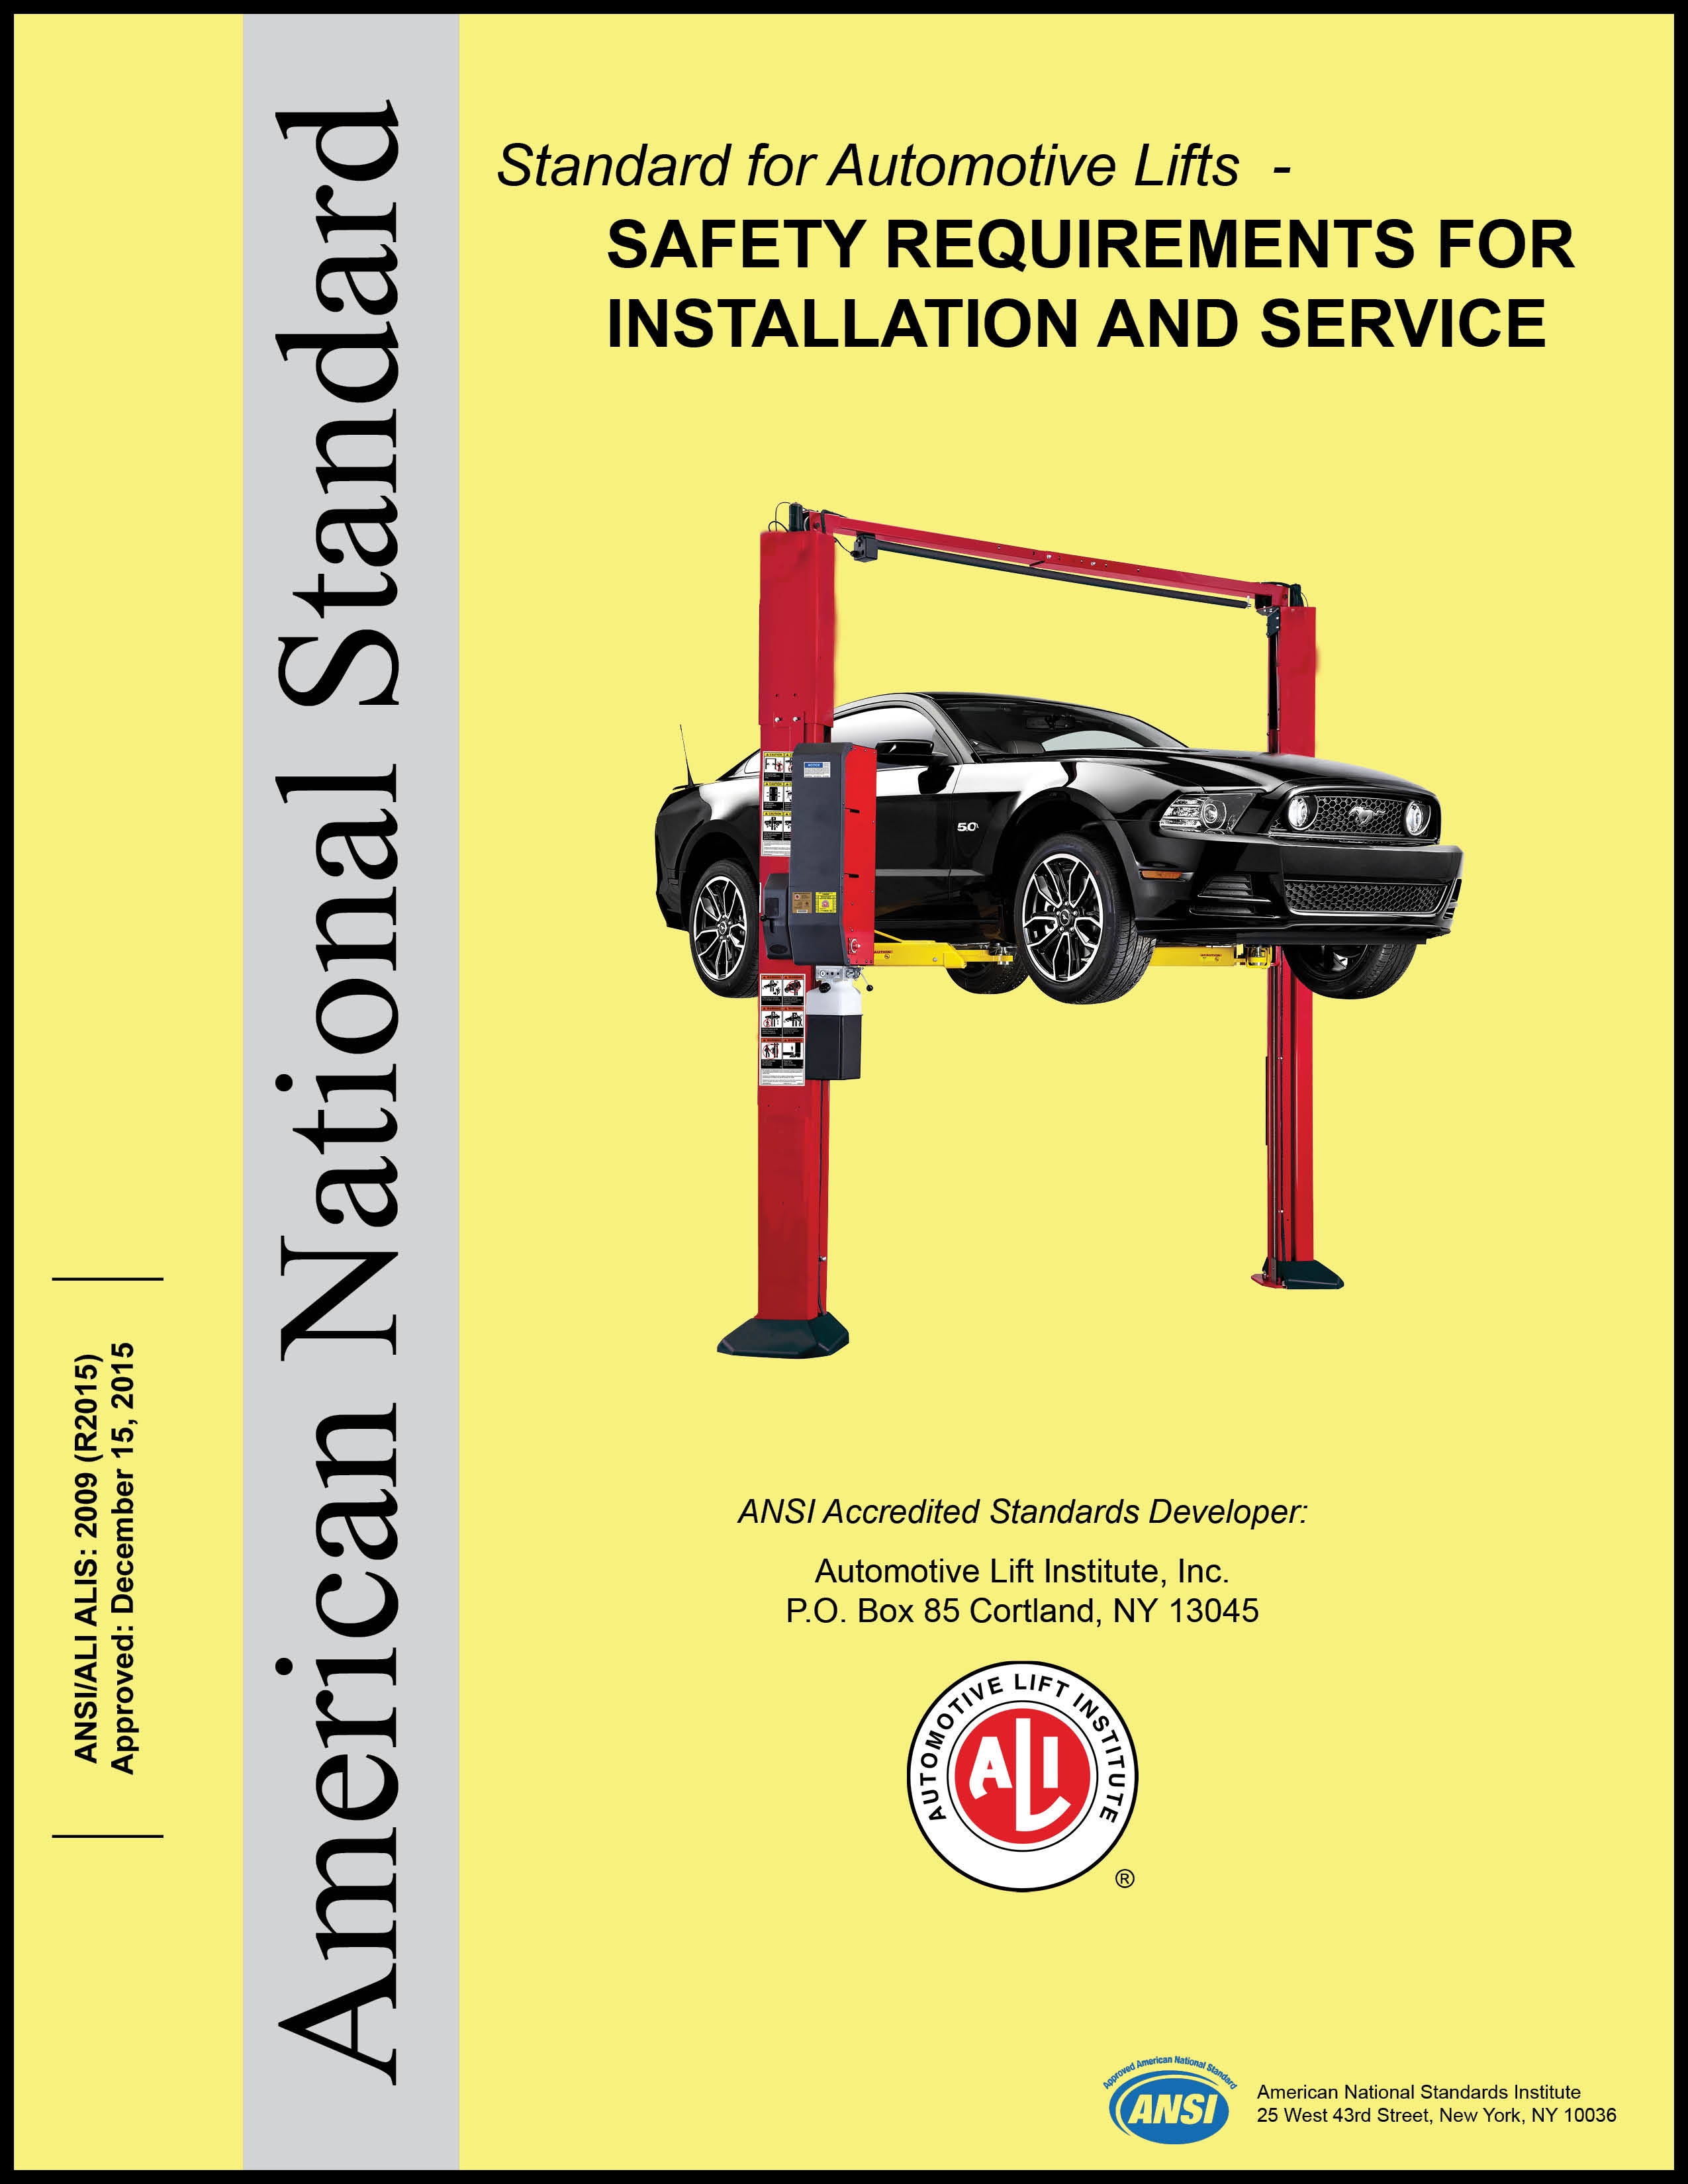 ansi/ali alis2009 edition was reaffirmed and introduced to the industry as  the alis 2009 (r2015) standard